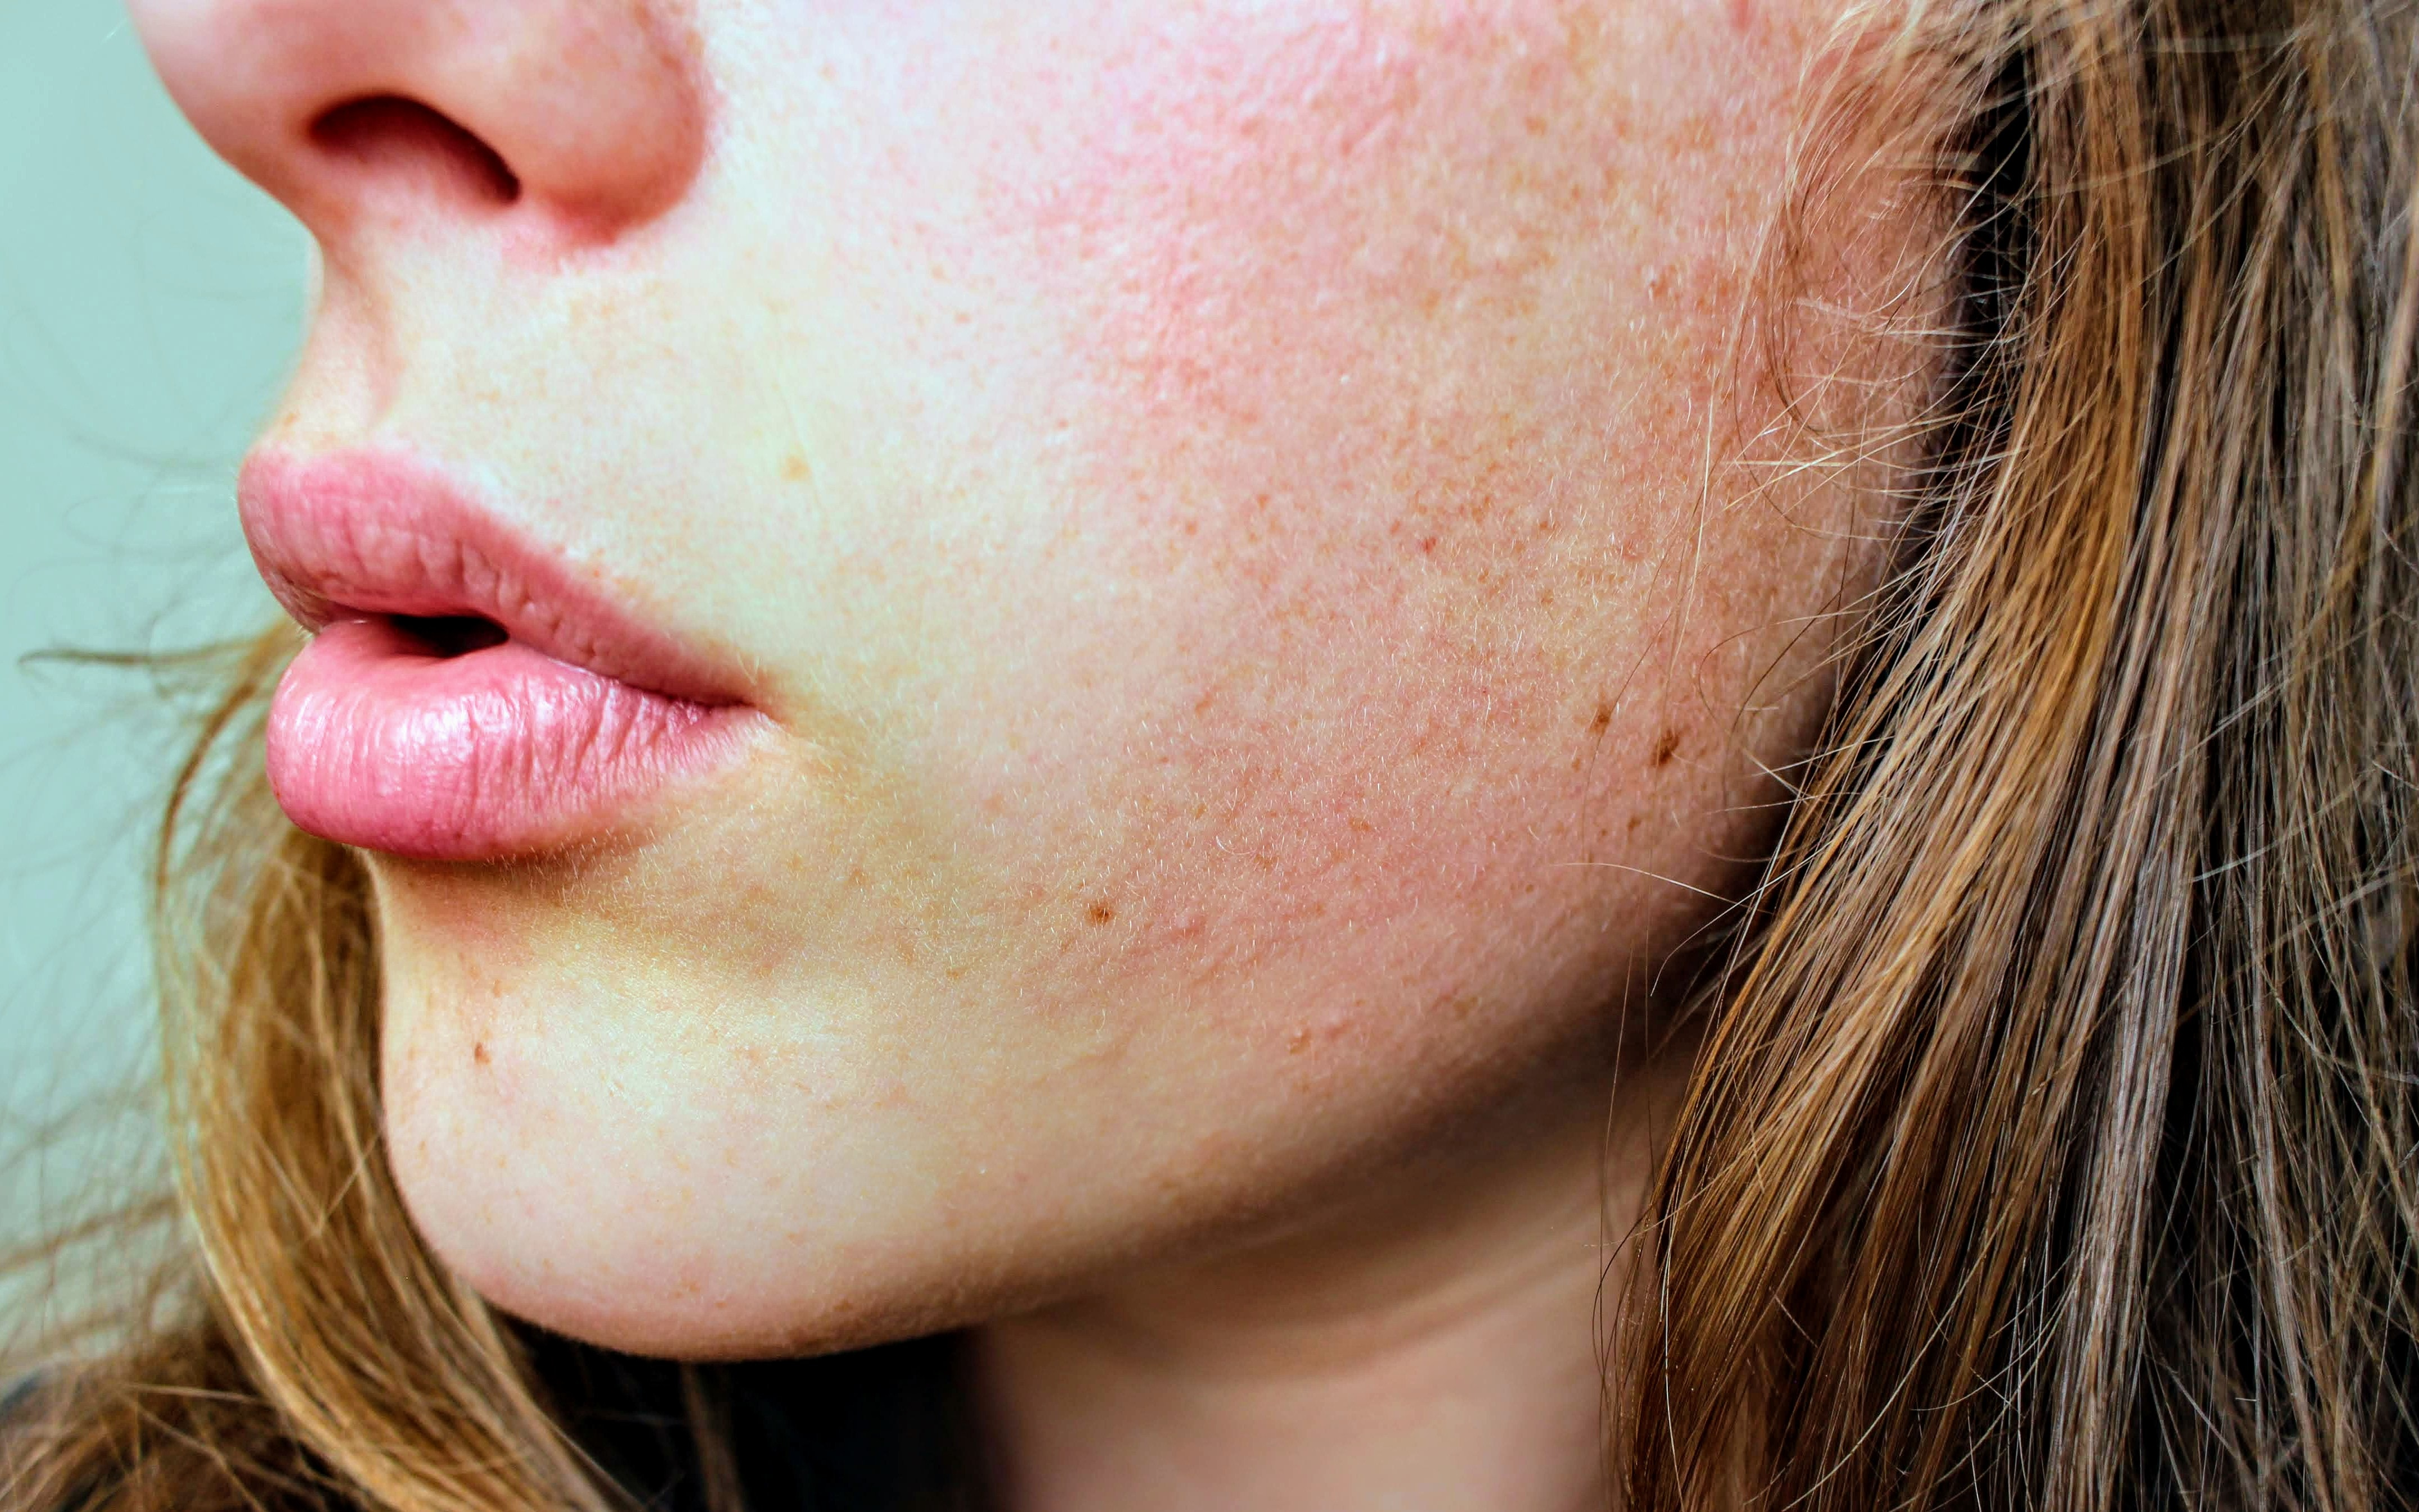 close-view-of-womans-face-1138531